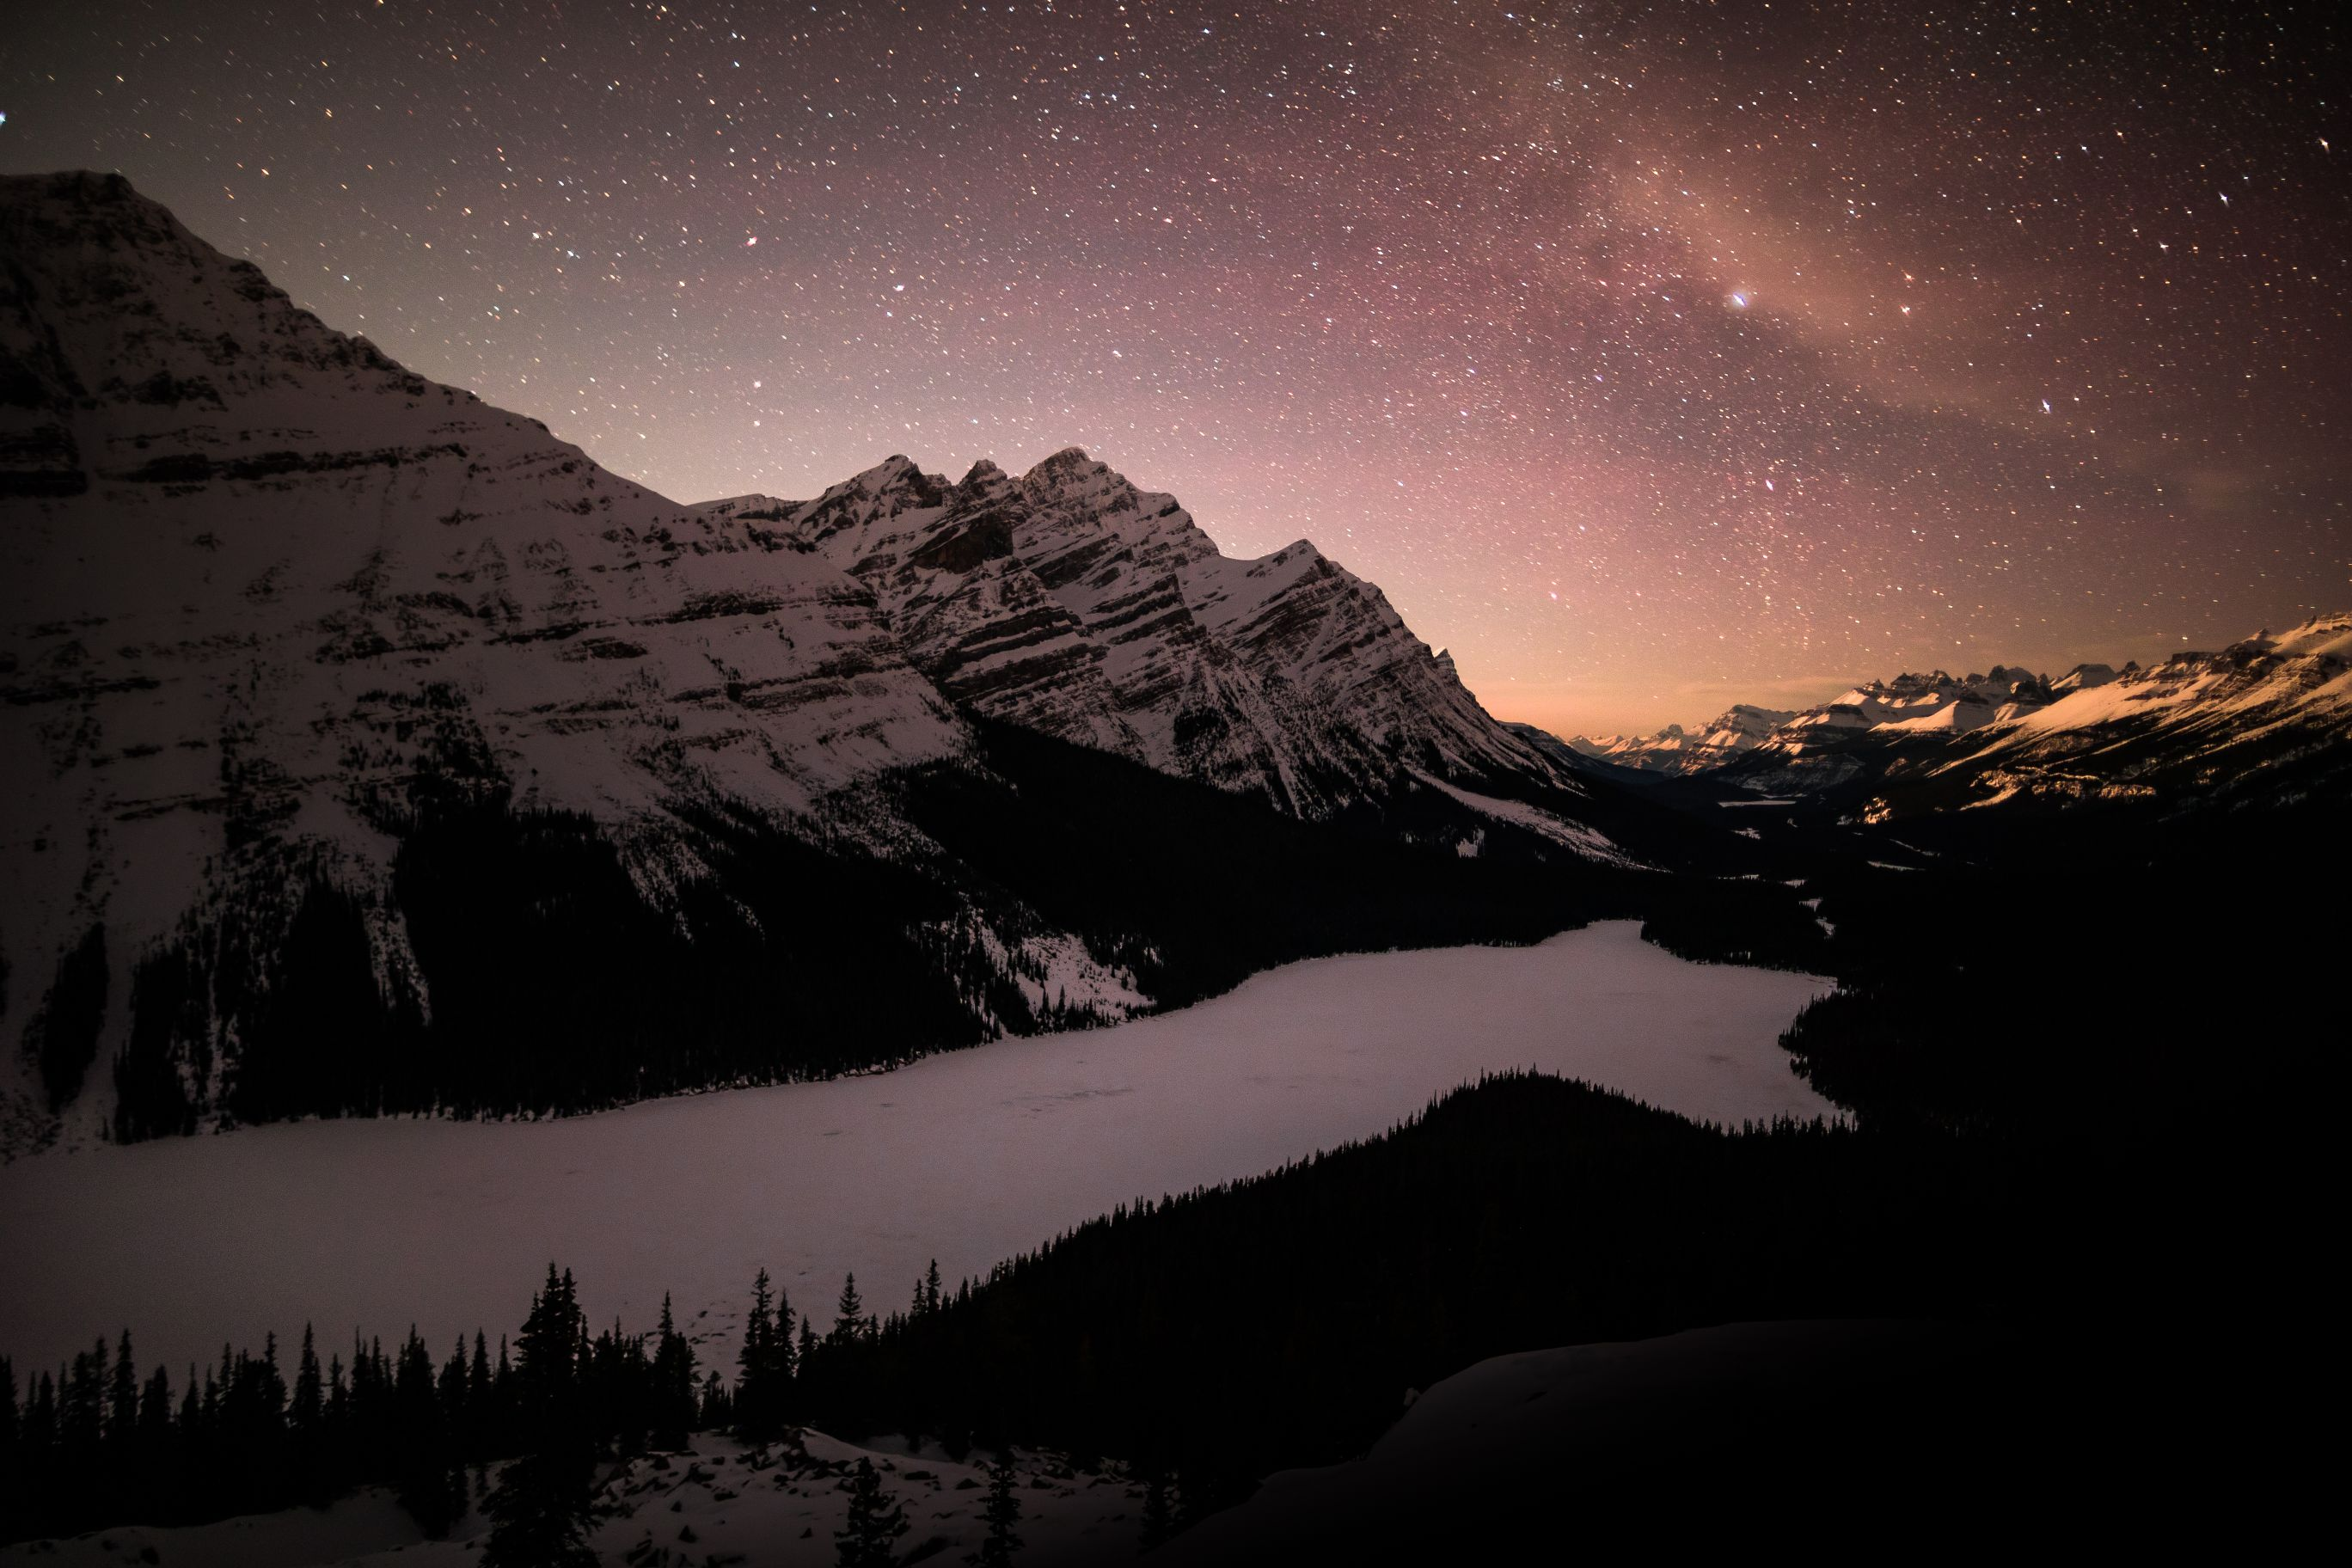 Night landscape of Peyto Lake with the stars above.